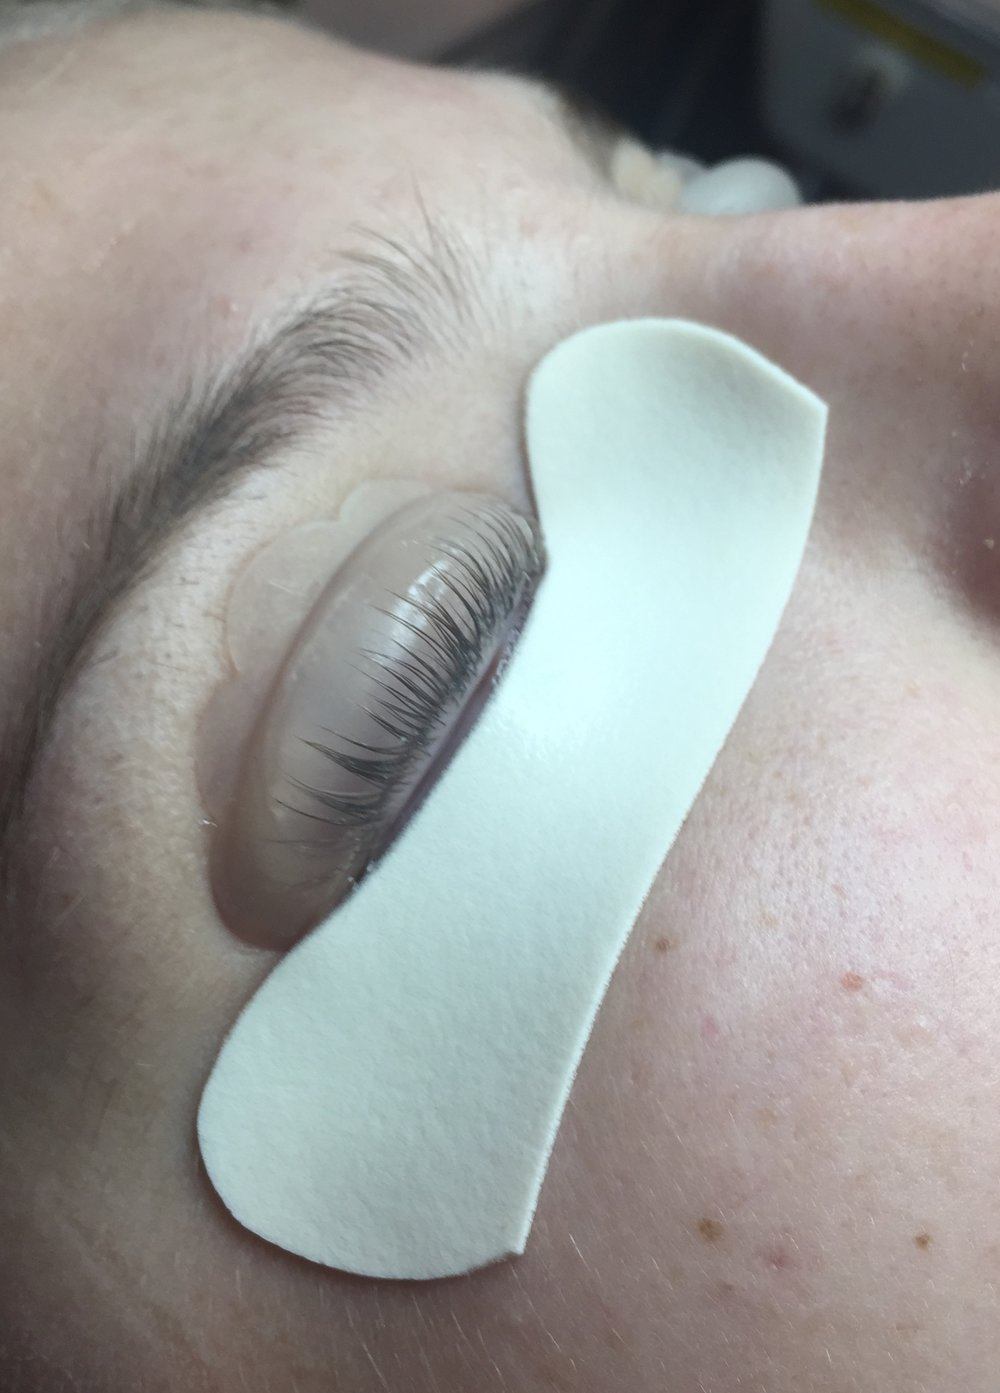 The lower lashes are protected by the foam tape and the upper lashes have been adhered to the silicon shield. After processing, this is the shape they will take!